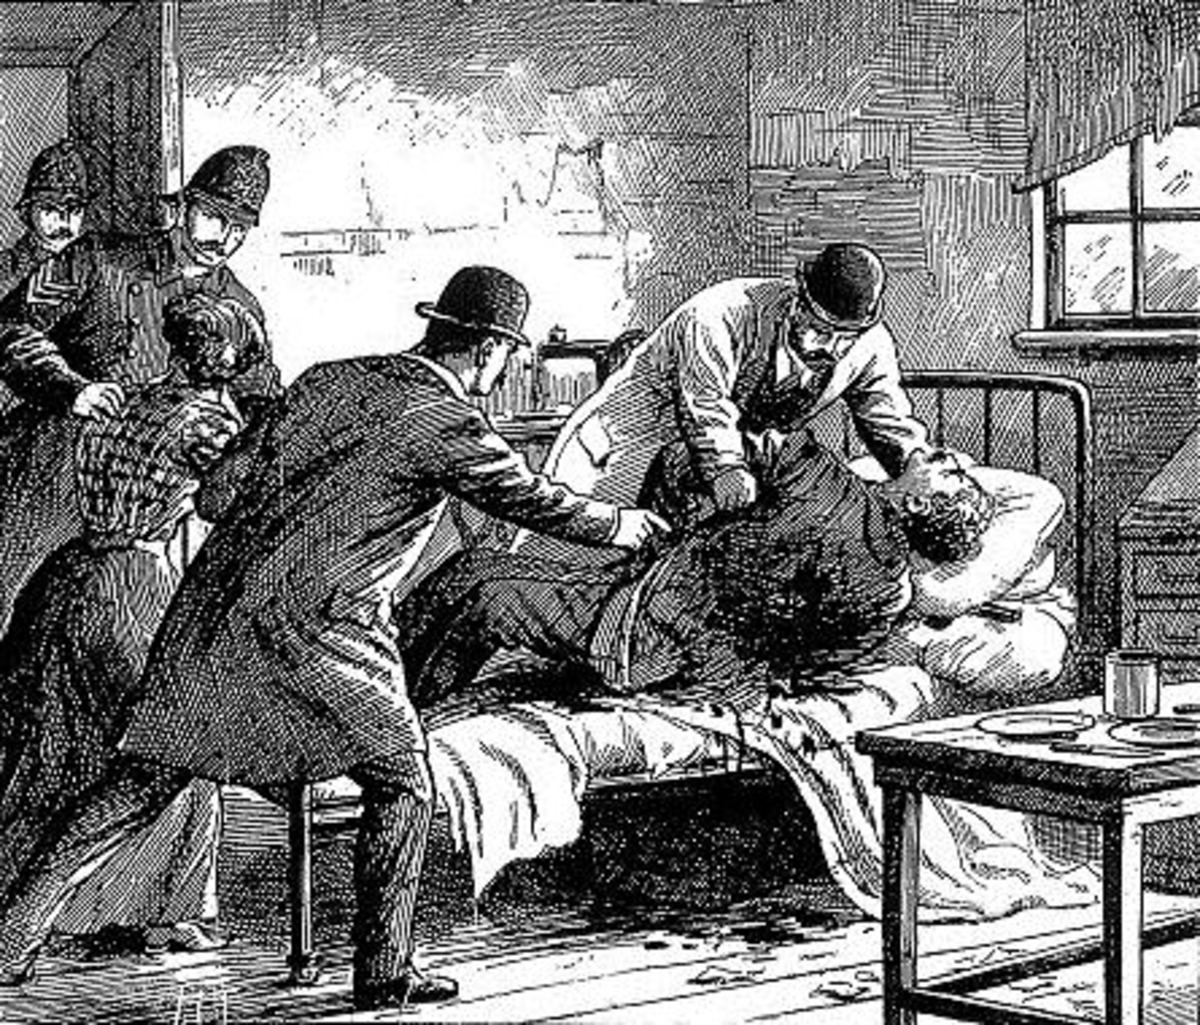 The discovery of George Gardstein's body as depicted by the Illustrated London News.